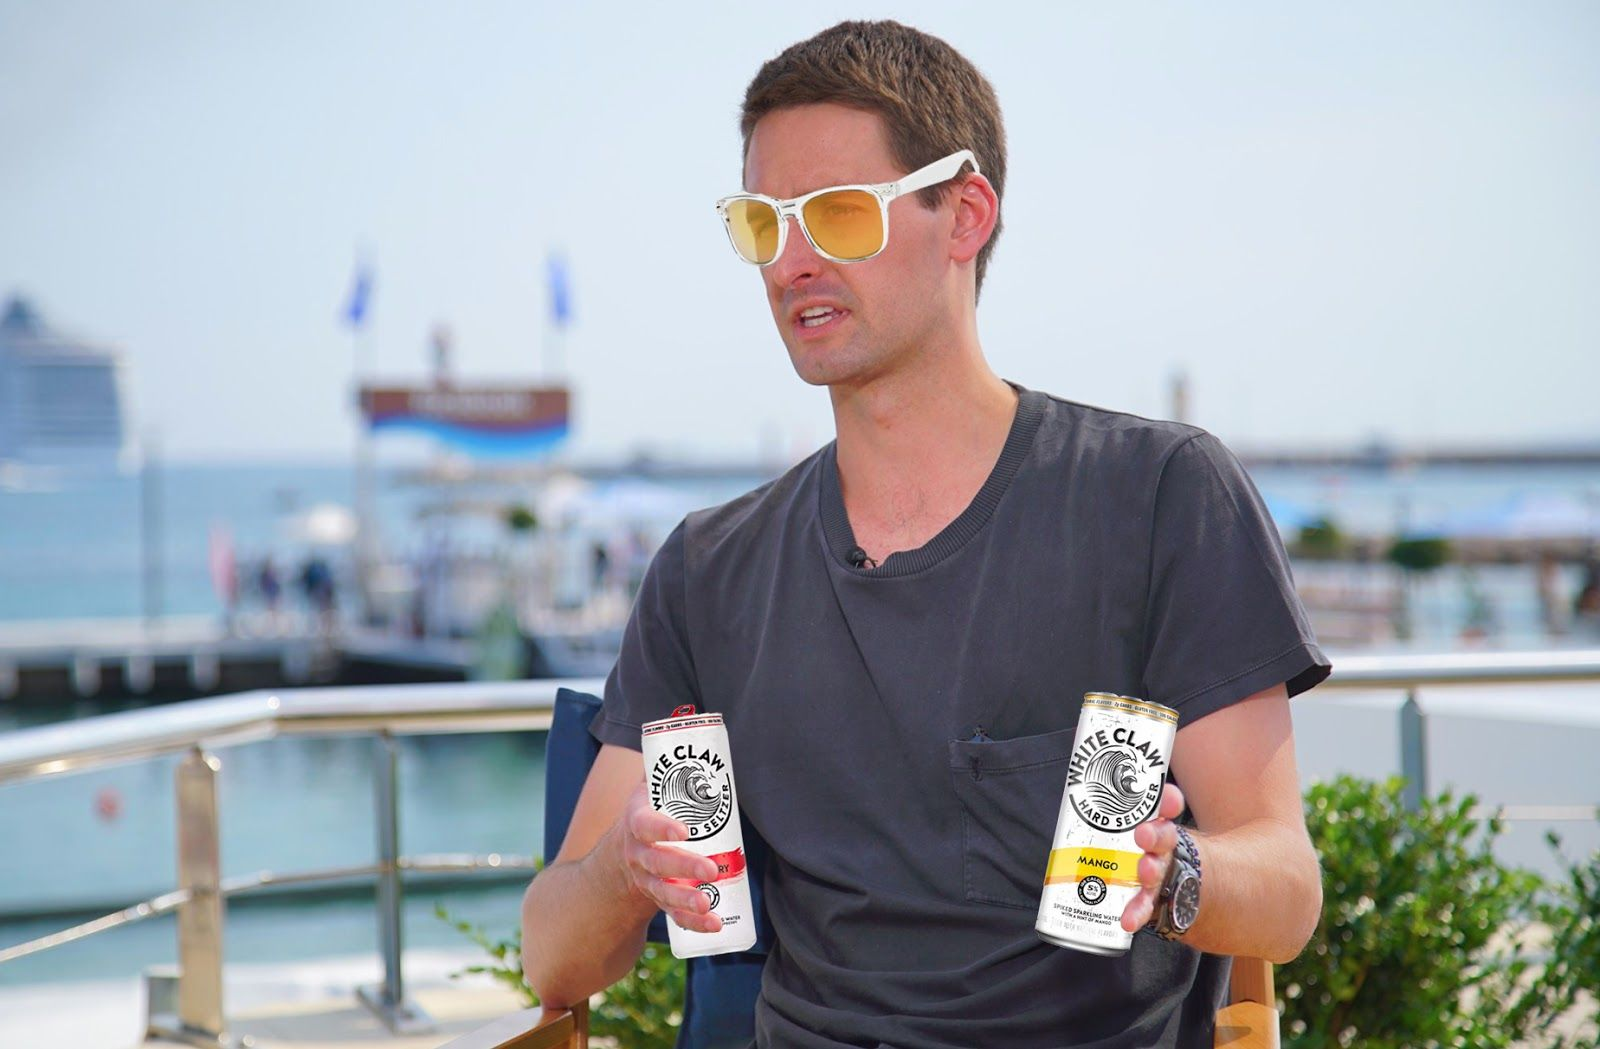 Evan Spiegel double fisting pair of White Claws that will disappear in 8 seconds